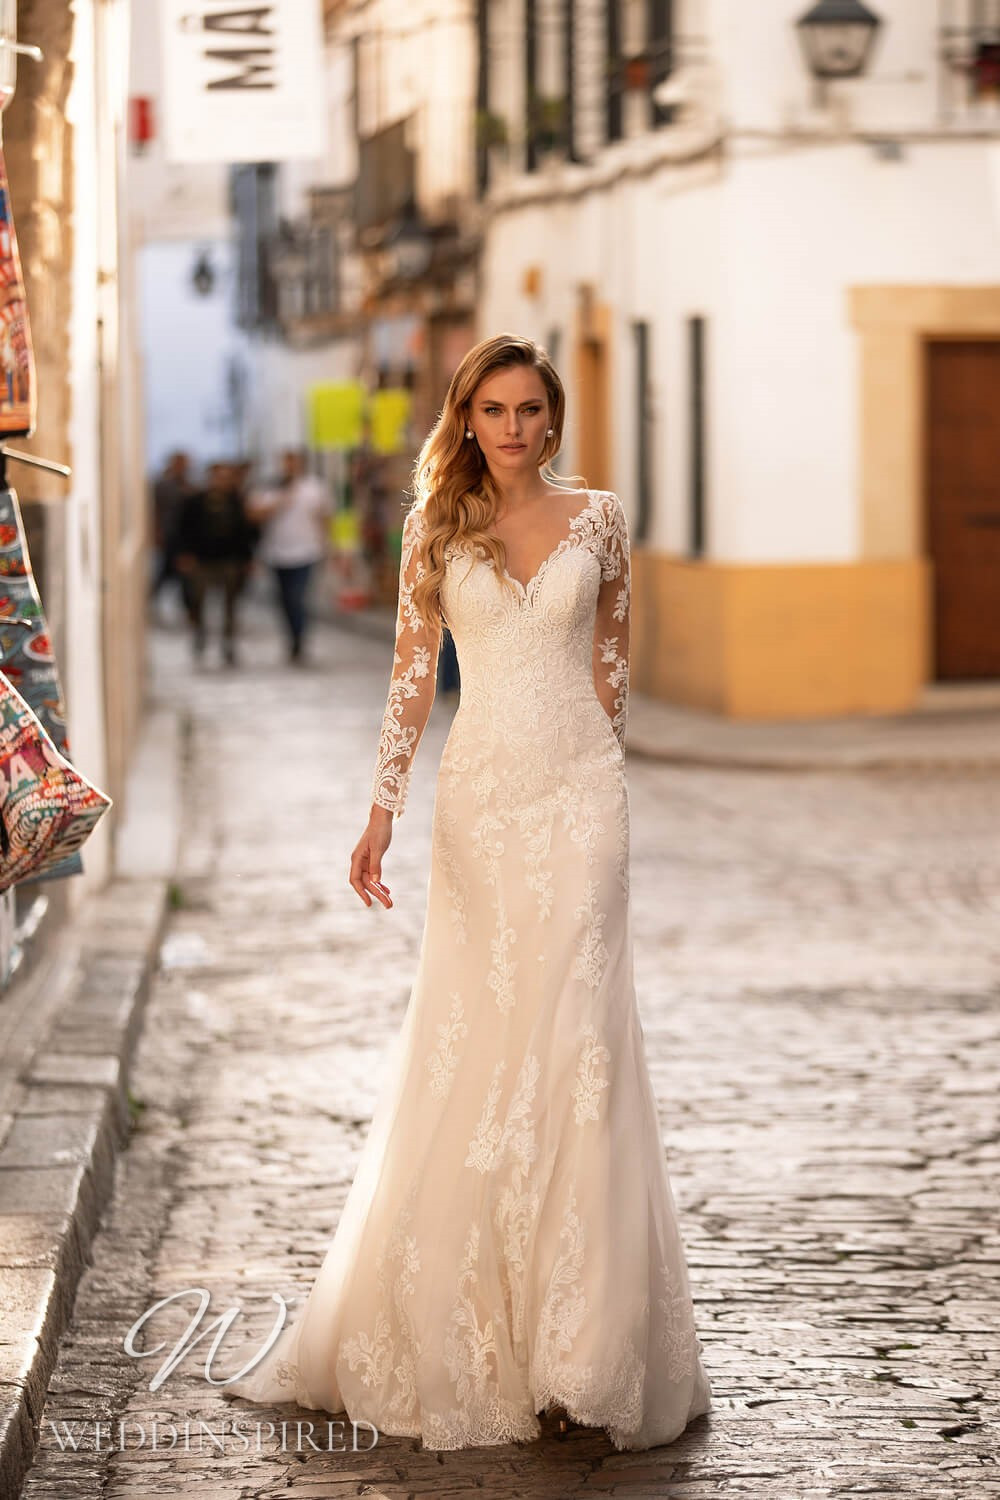 An Essential by Lussano 2021 lace sheath wedding dress with long sleeves